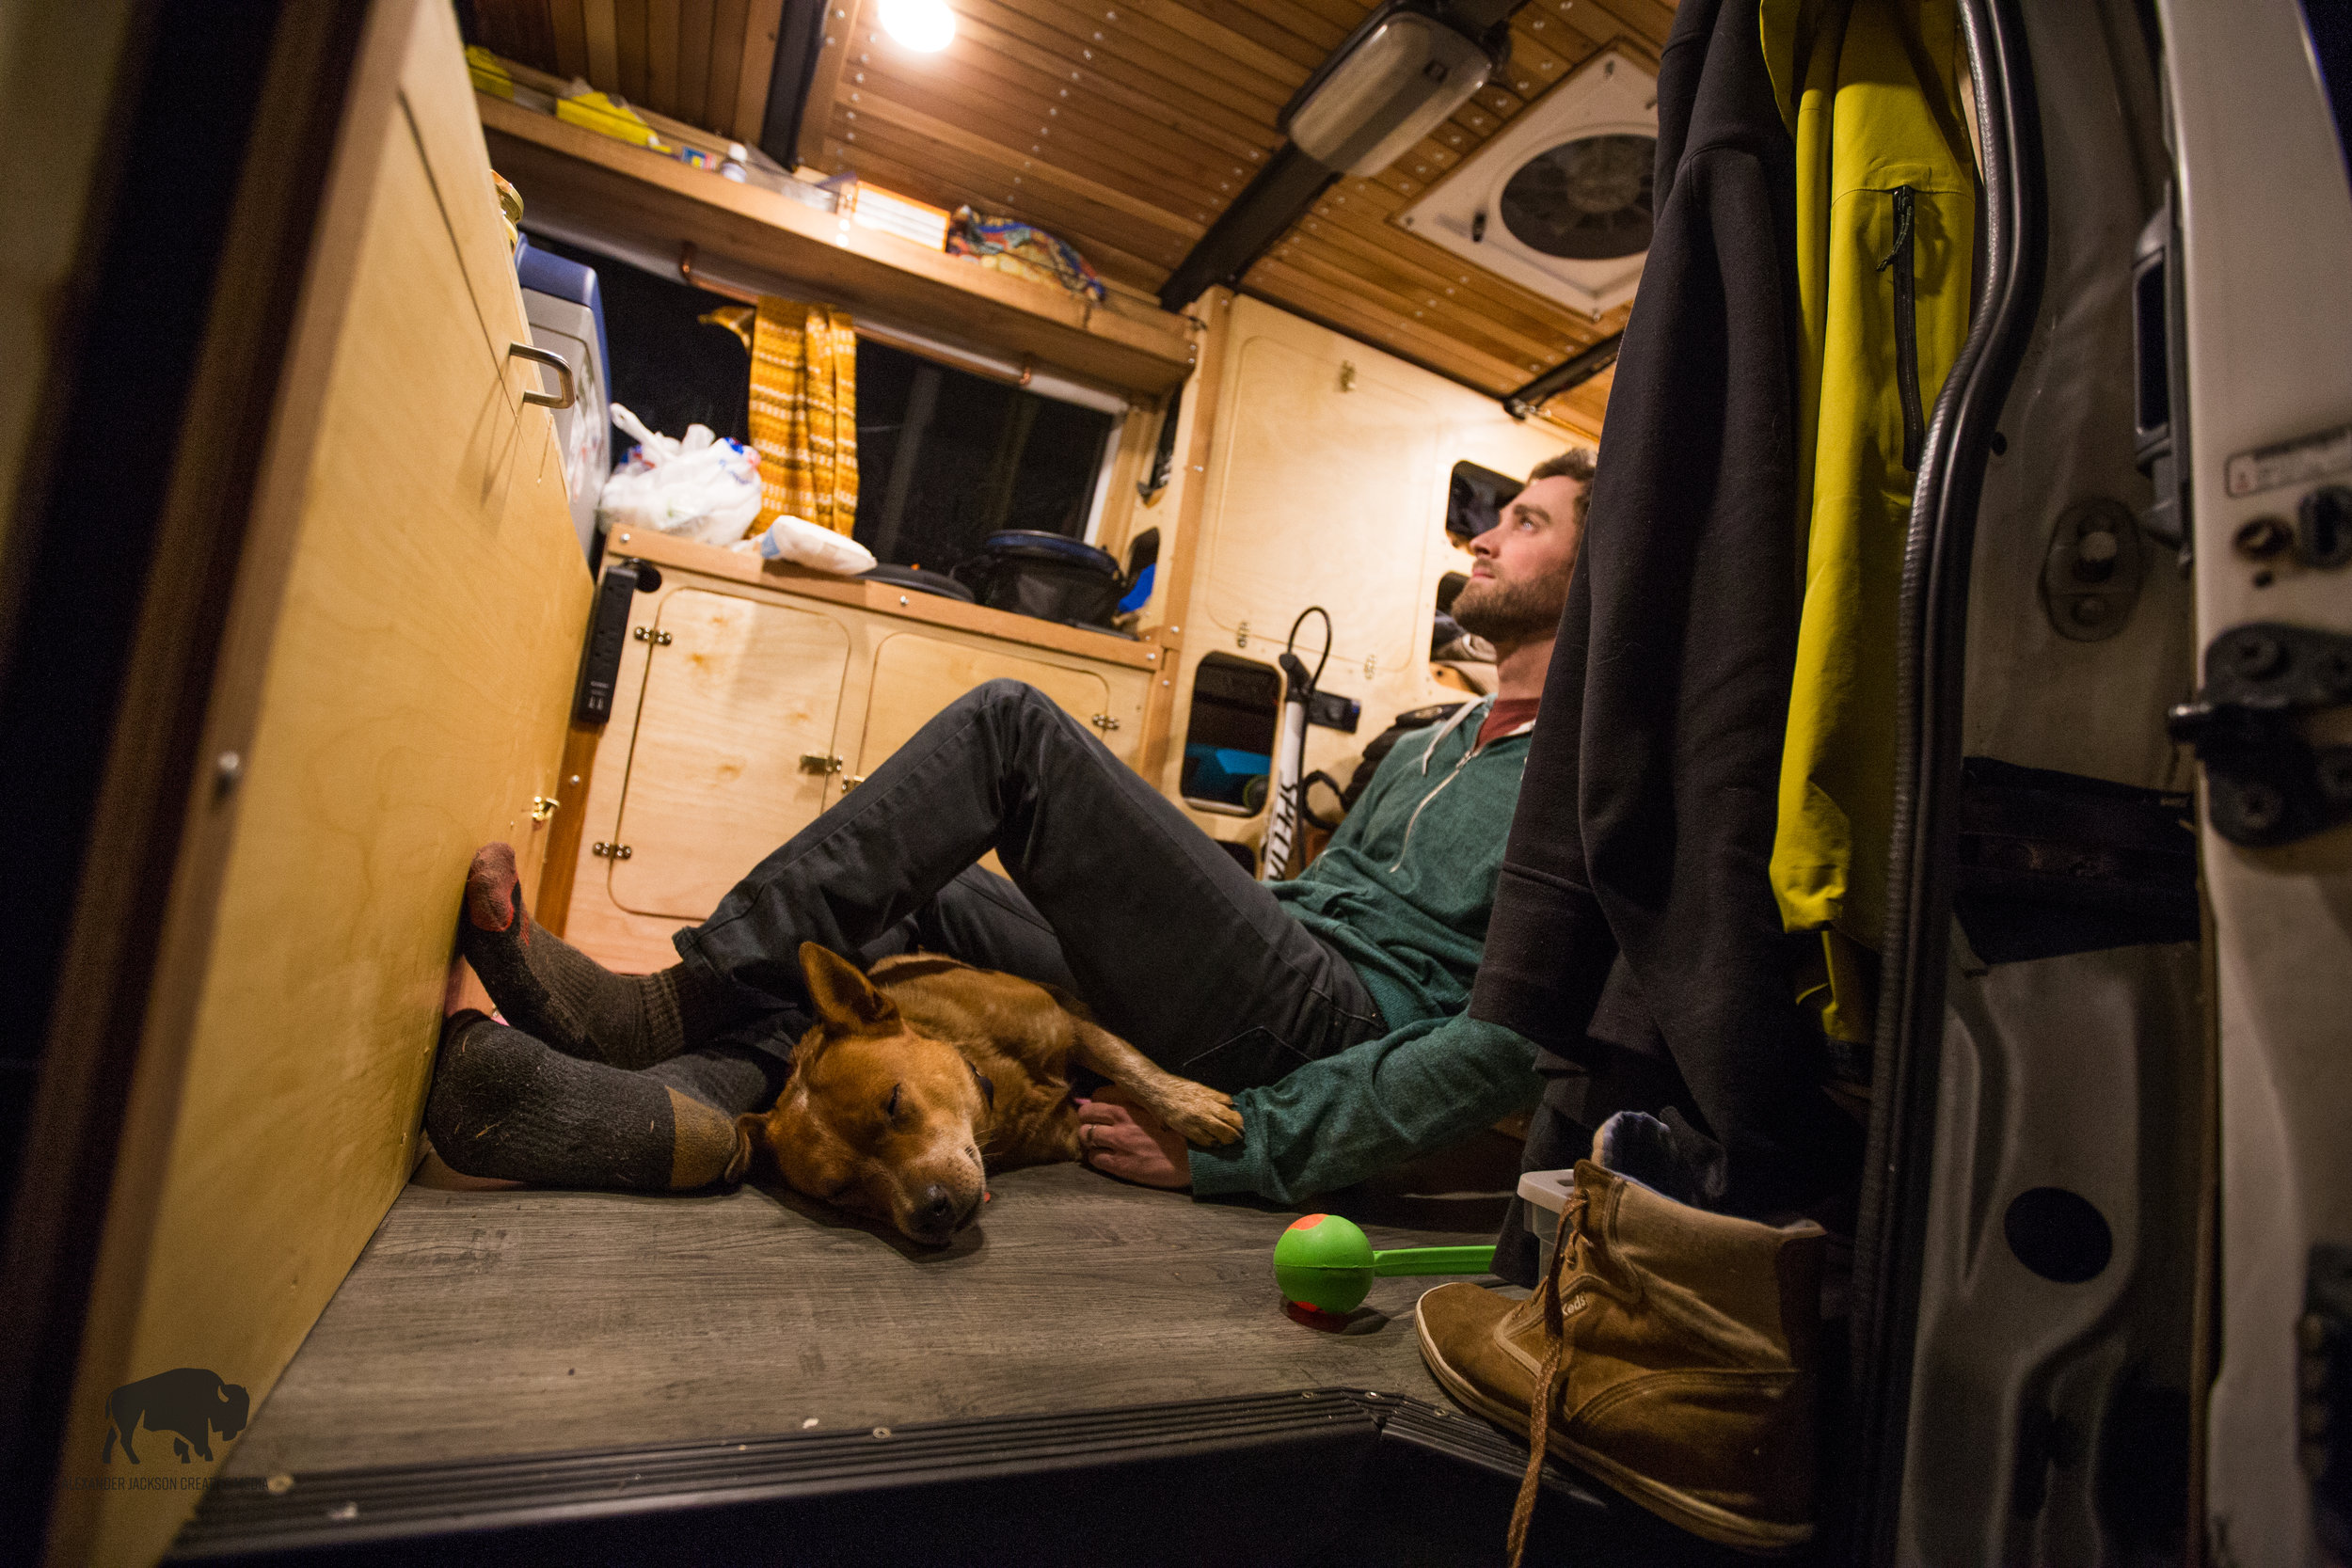 vanlife 2 (3 of 4).jpg